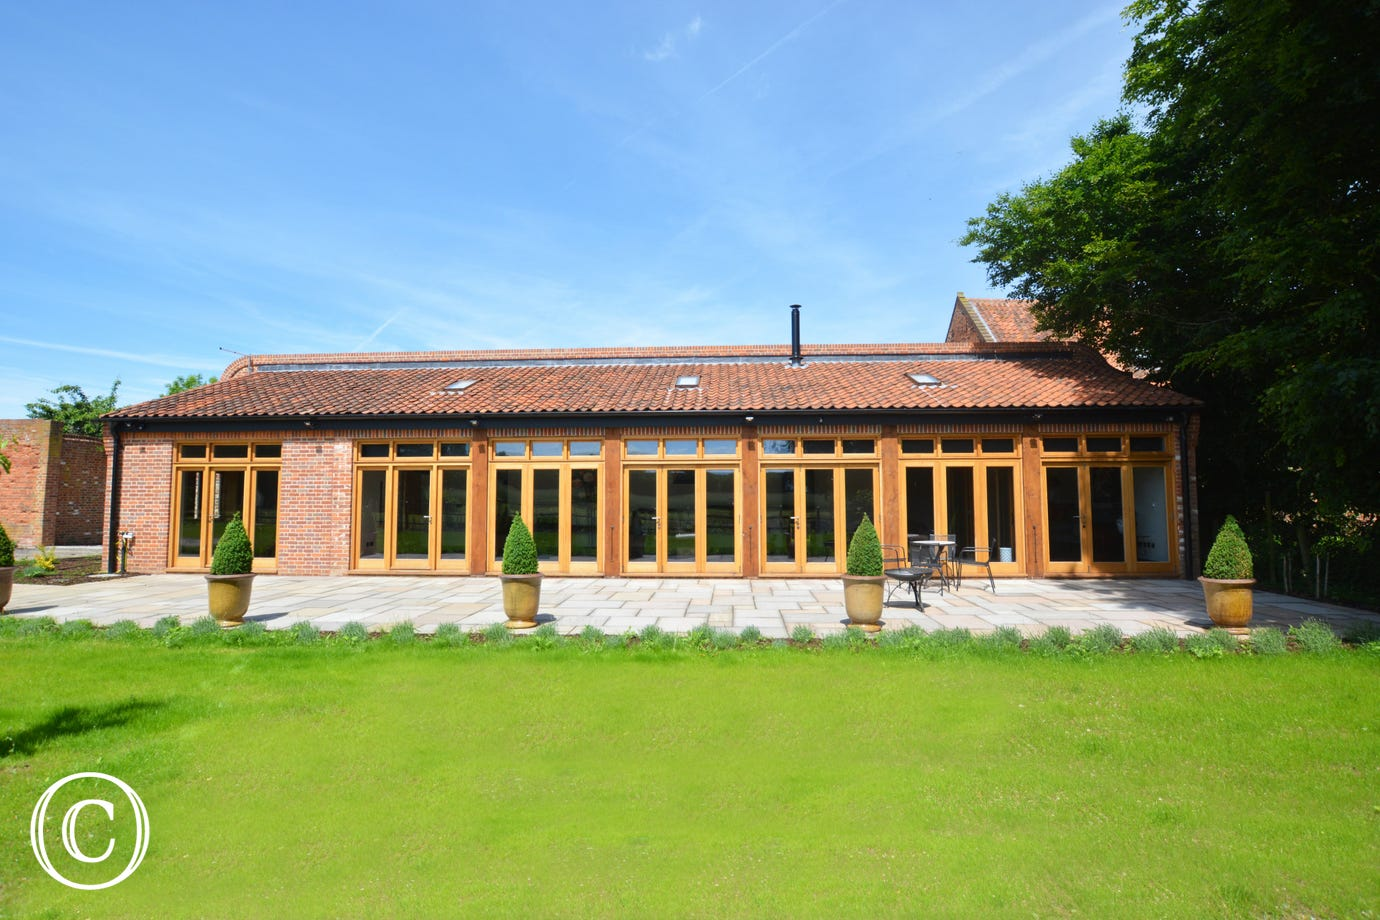 Attractive frontage to Cranmer Hall Barn Orangery